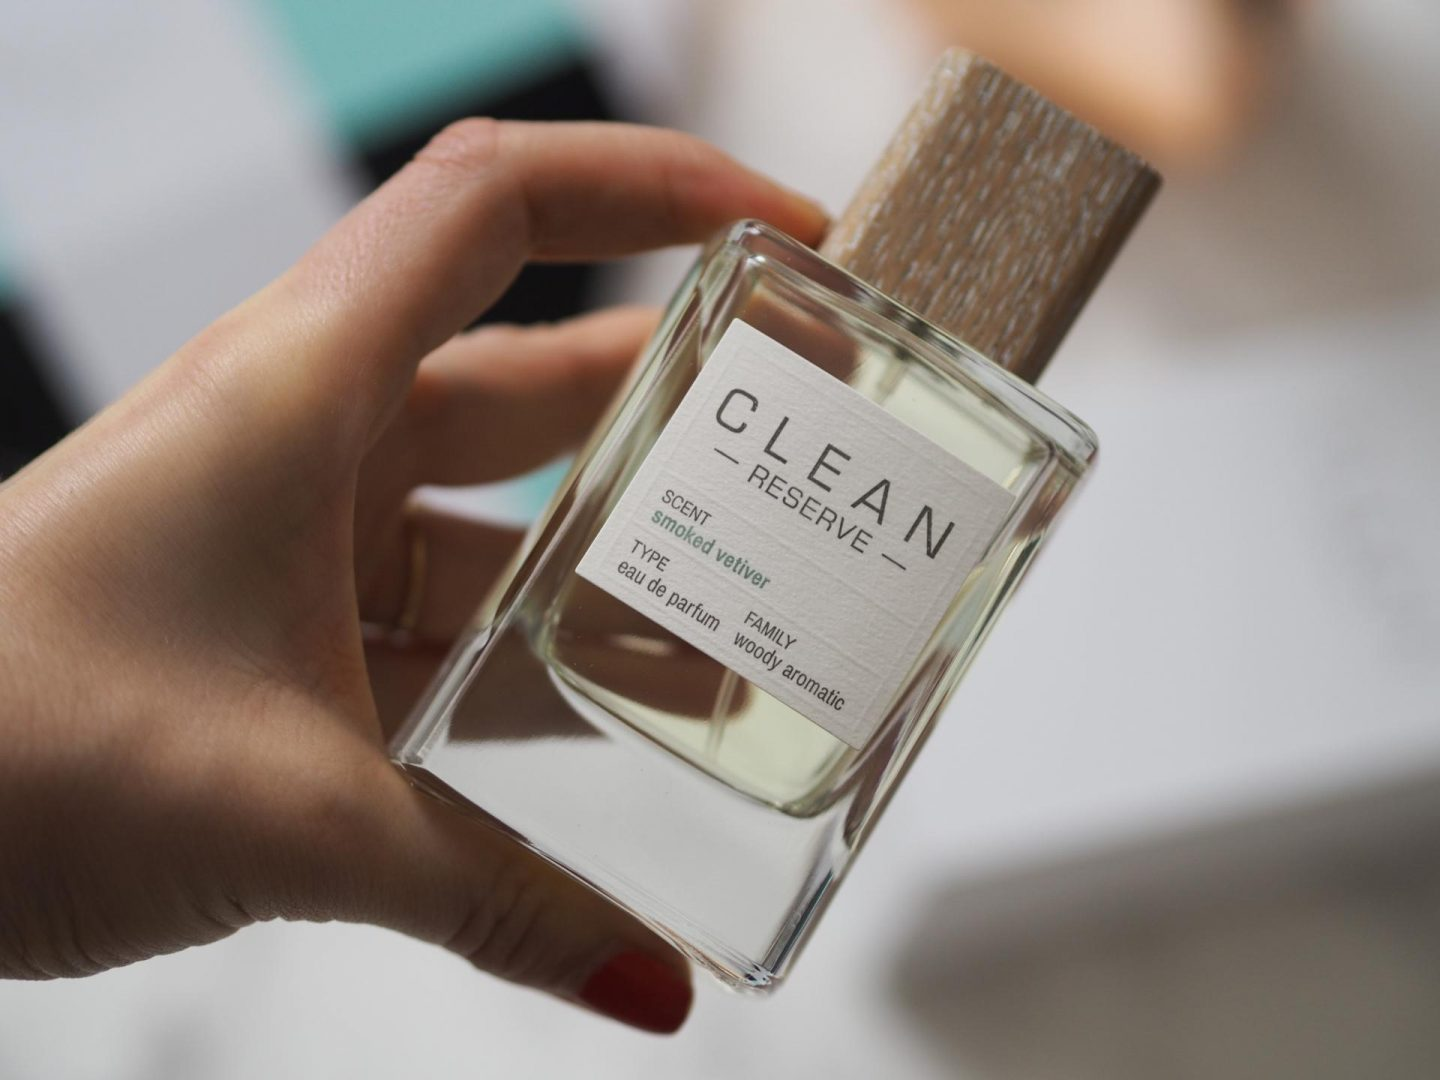 The Best Unisex Fragrances - Product: Clean Reserve Smoked Vetiver